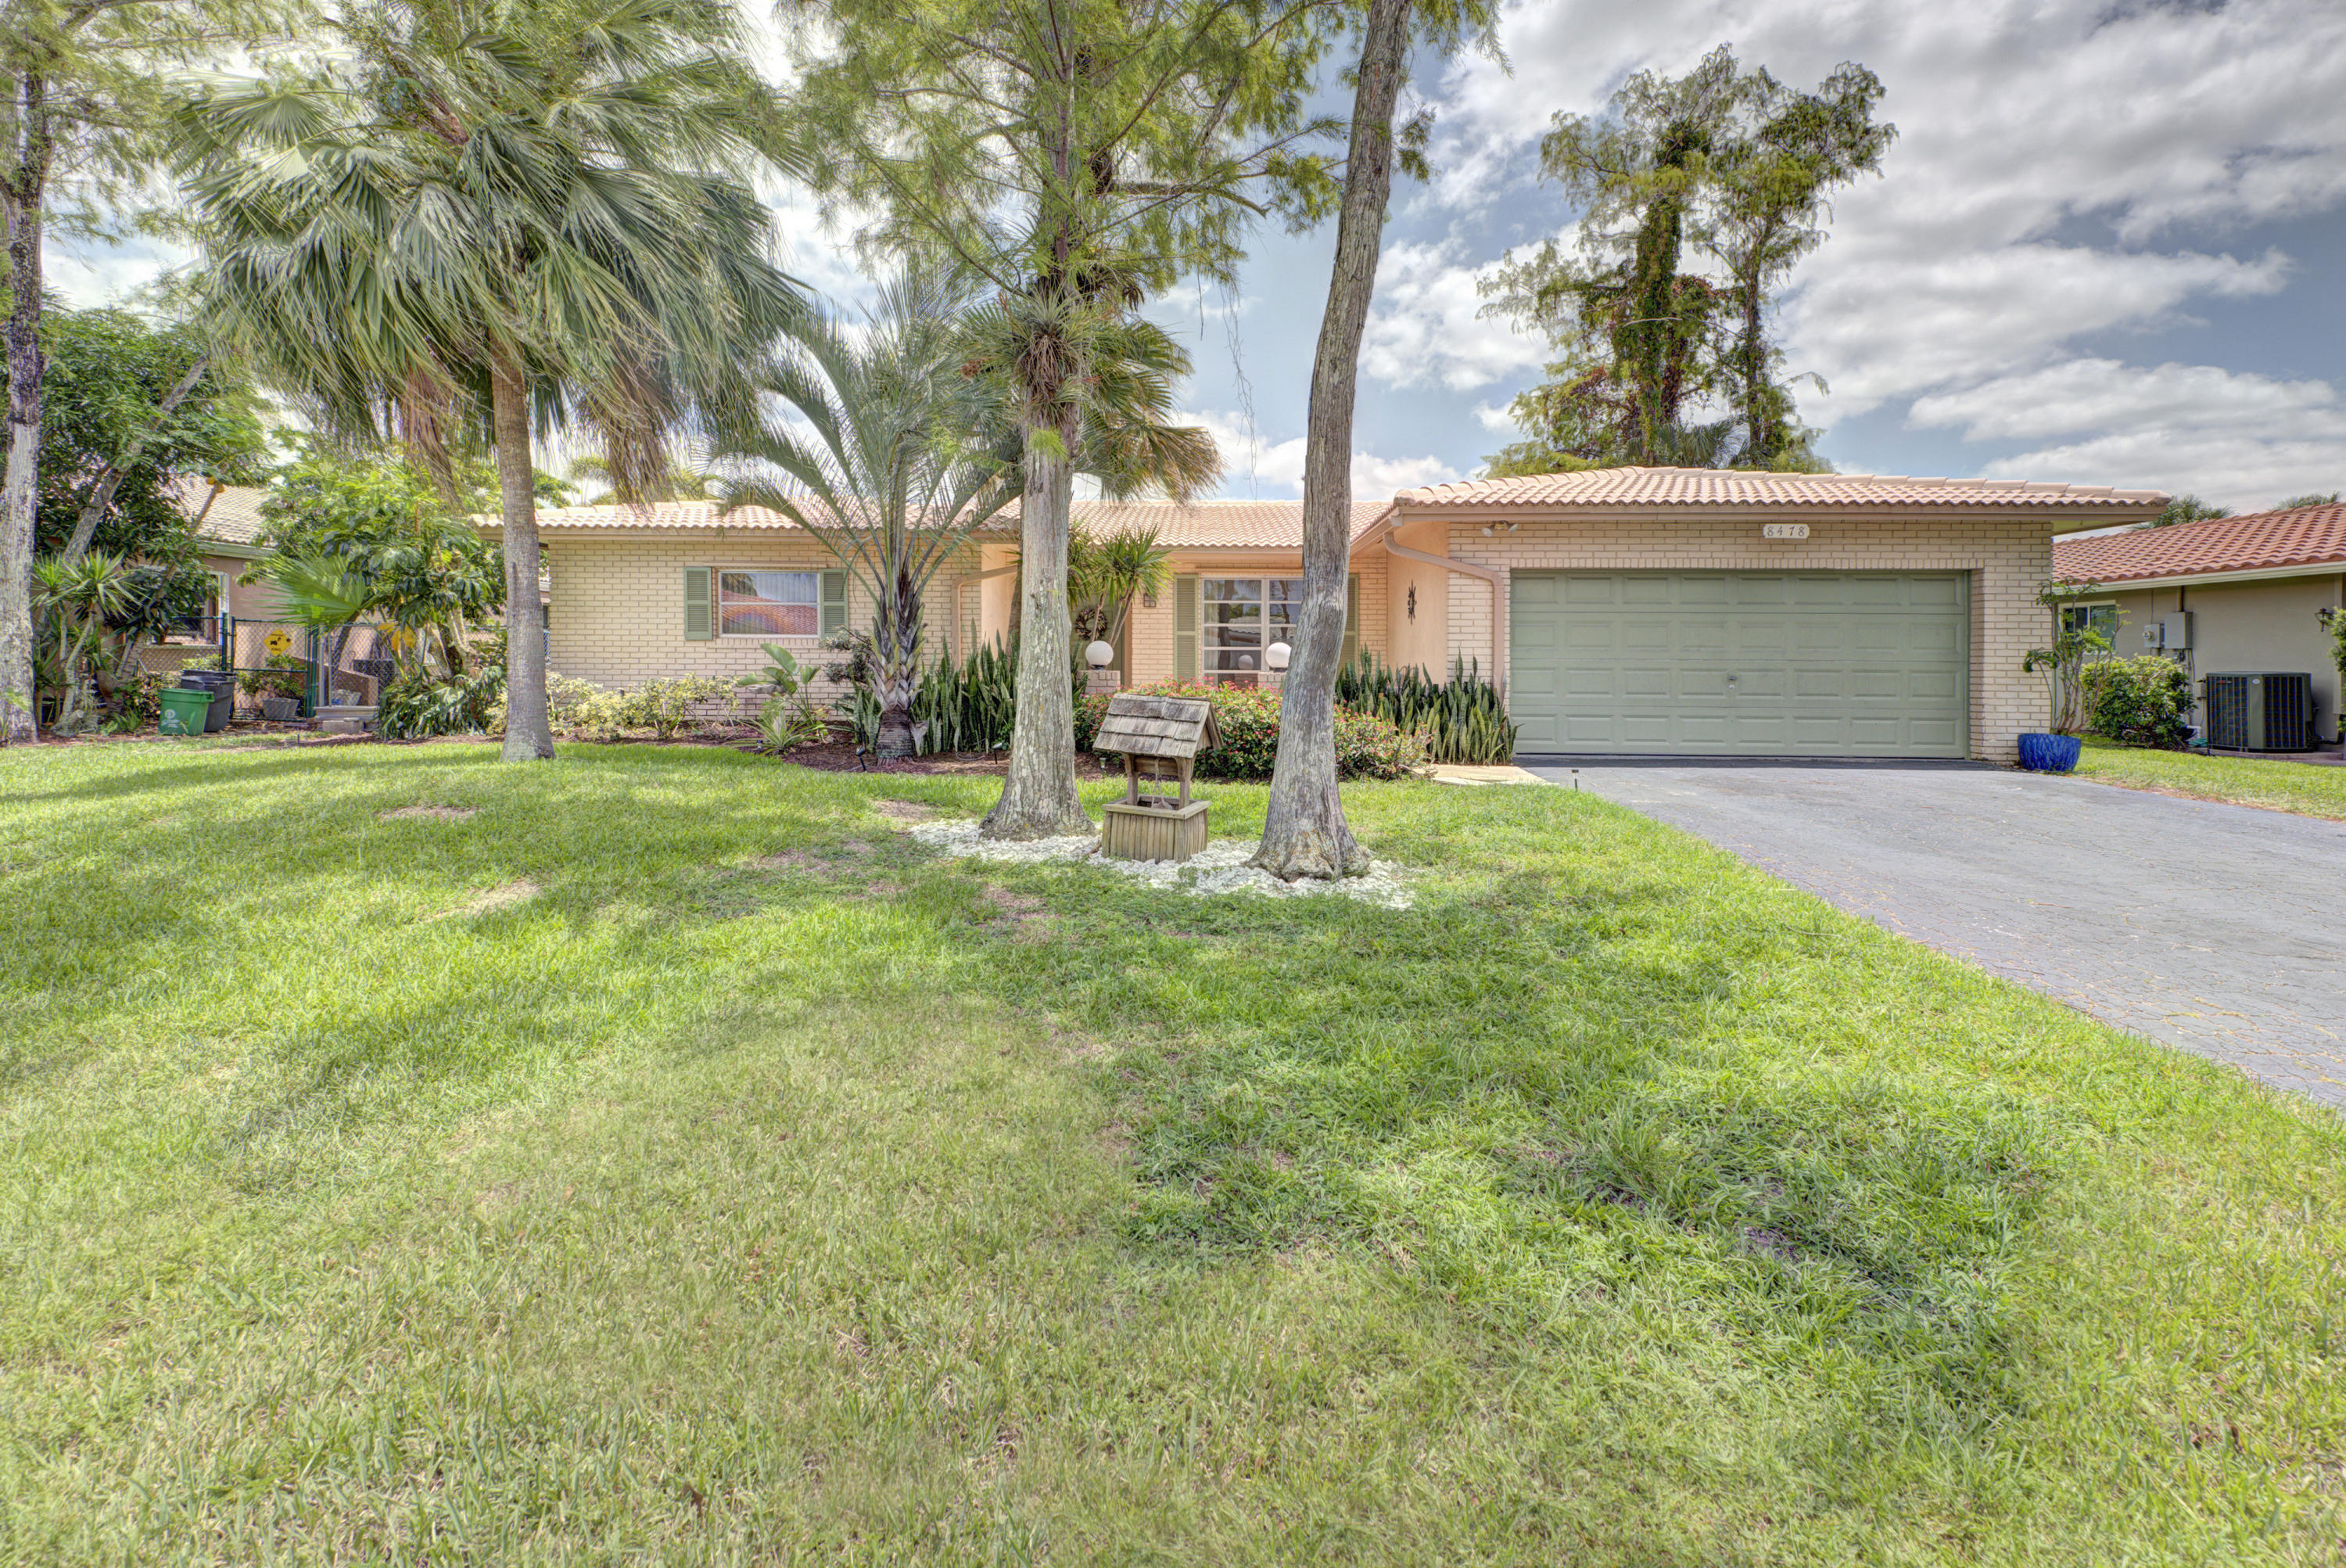 Homes For Sale By Owner >> Coral Springs Florida Homes For Sale By Owner Fsbo Byowner Com